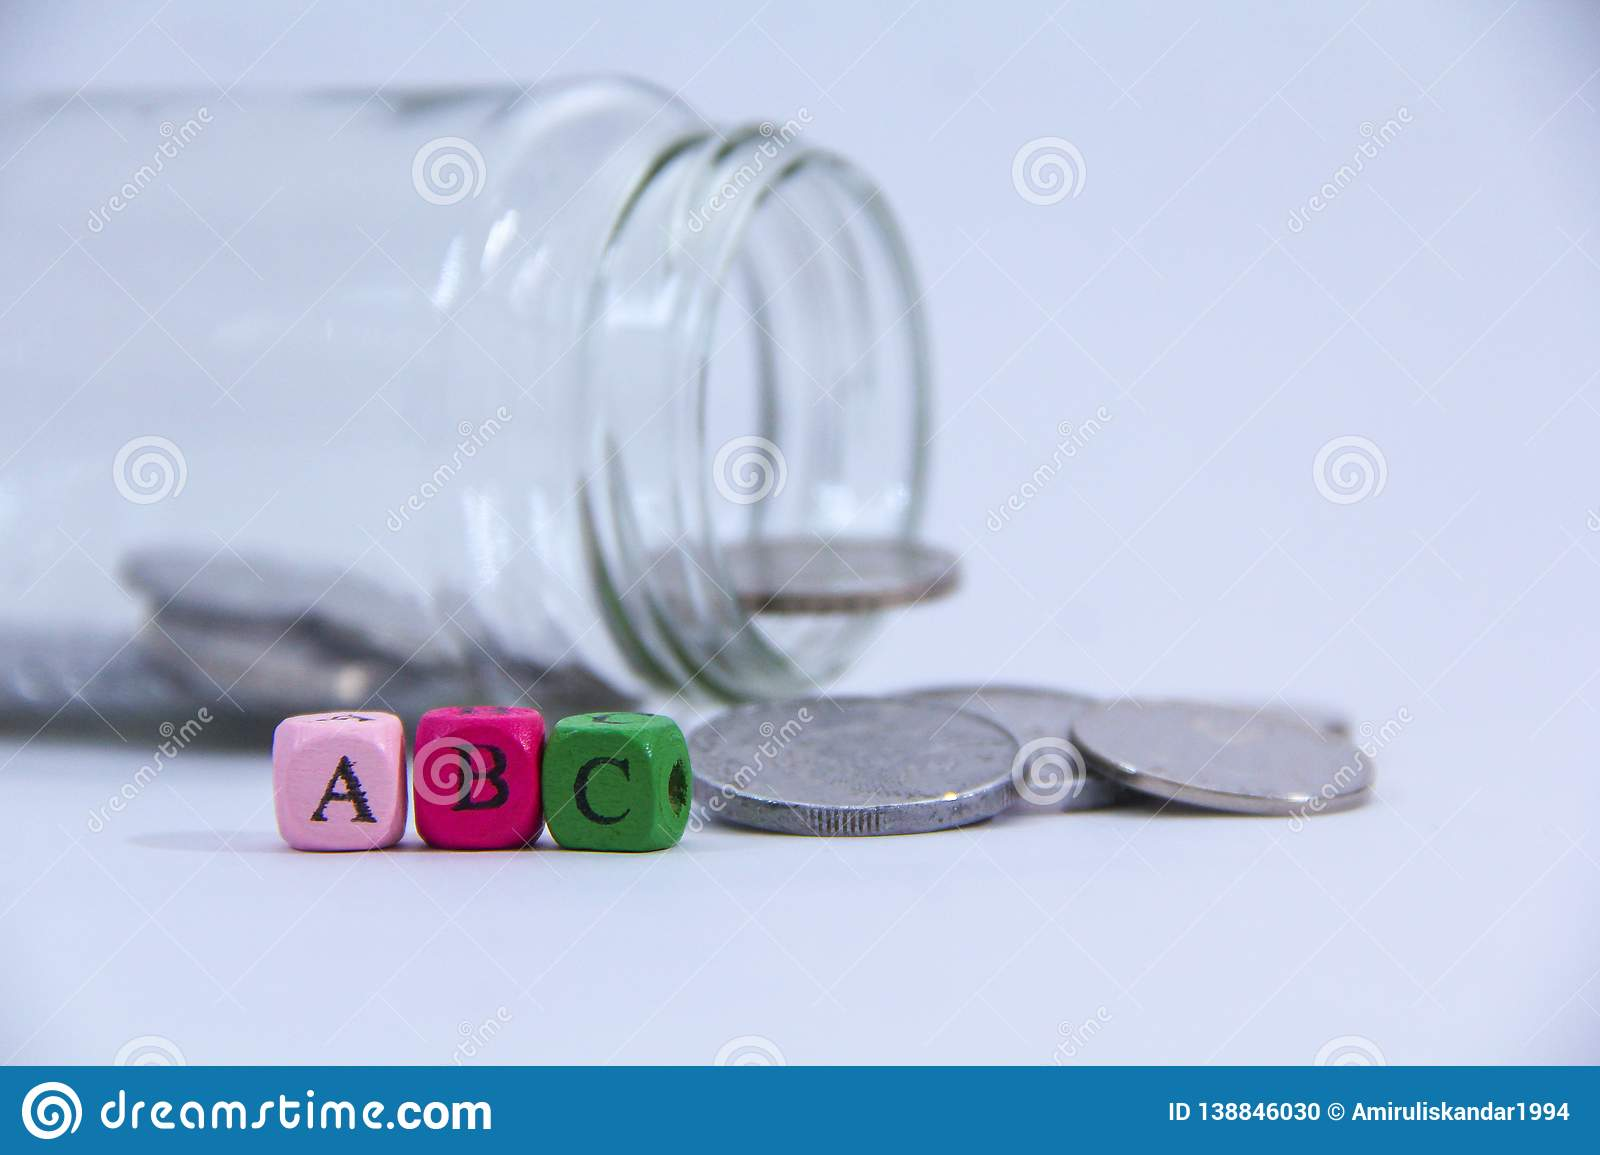 A,B and C in wooden block with coin at the back